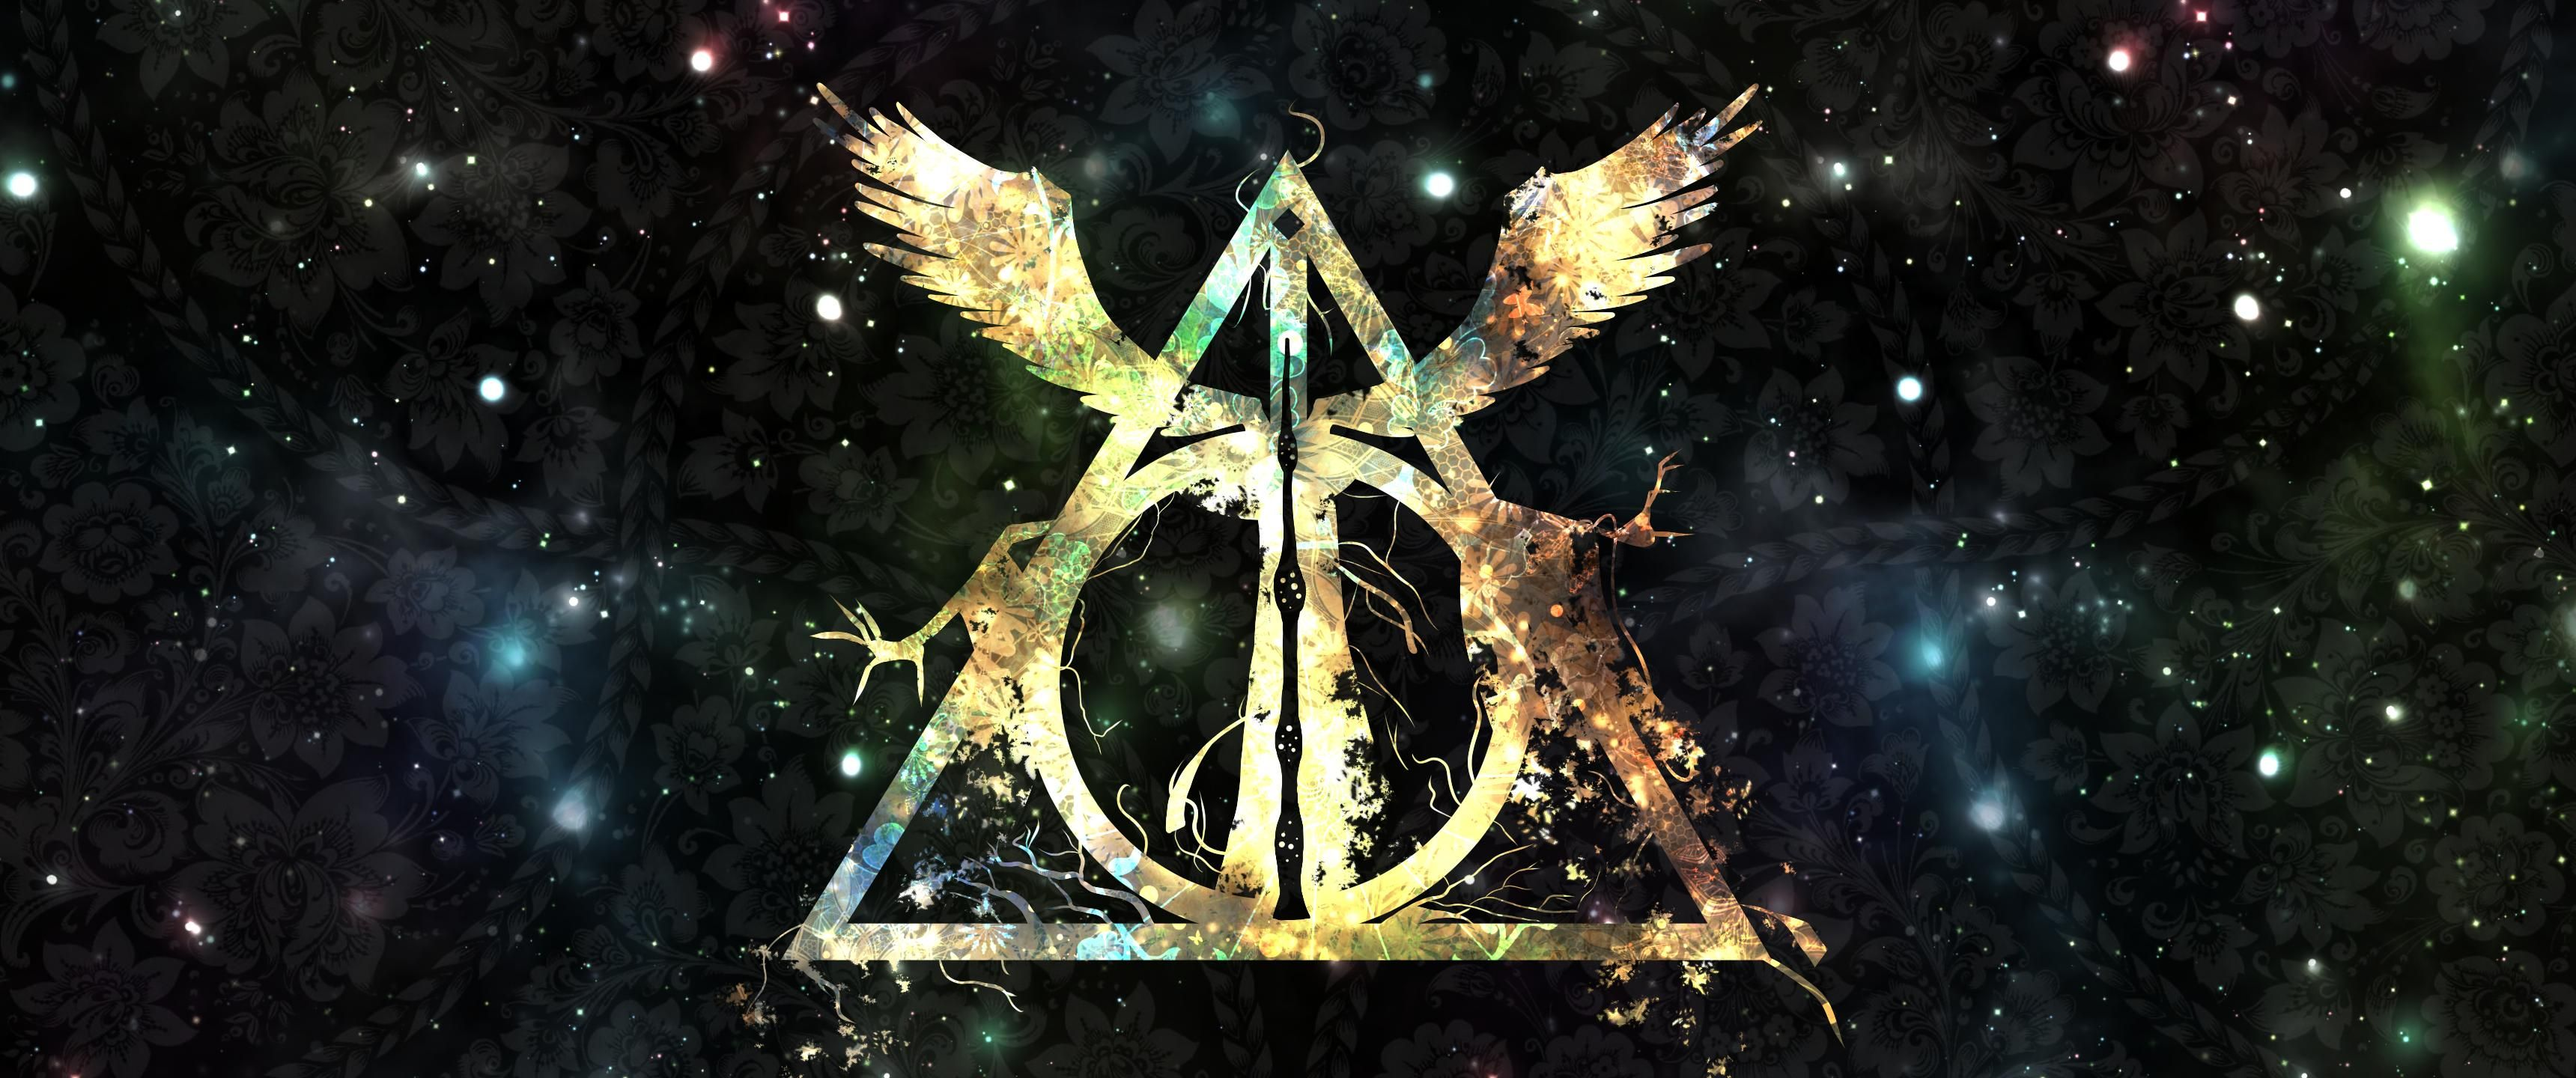 Harry Potter Wallpaper Deathly Hallows A